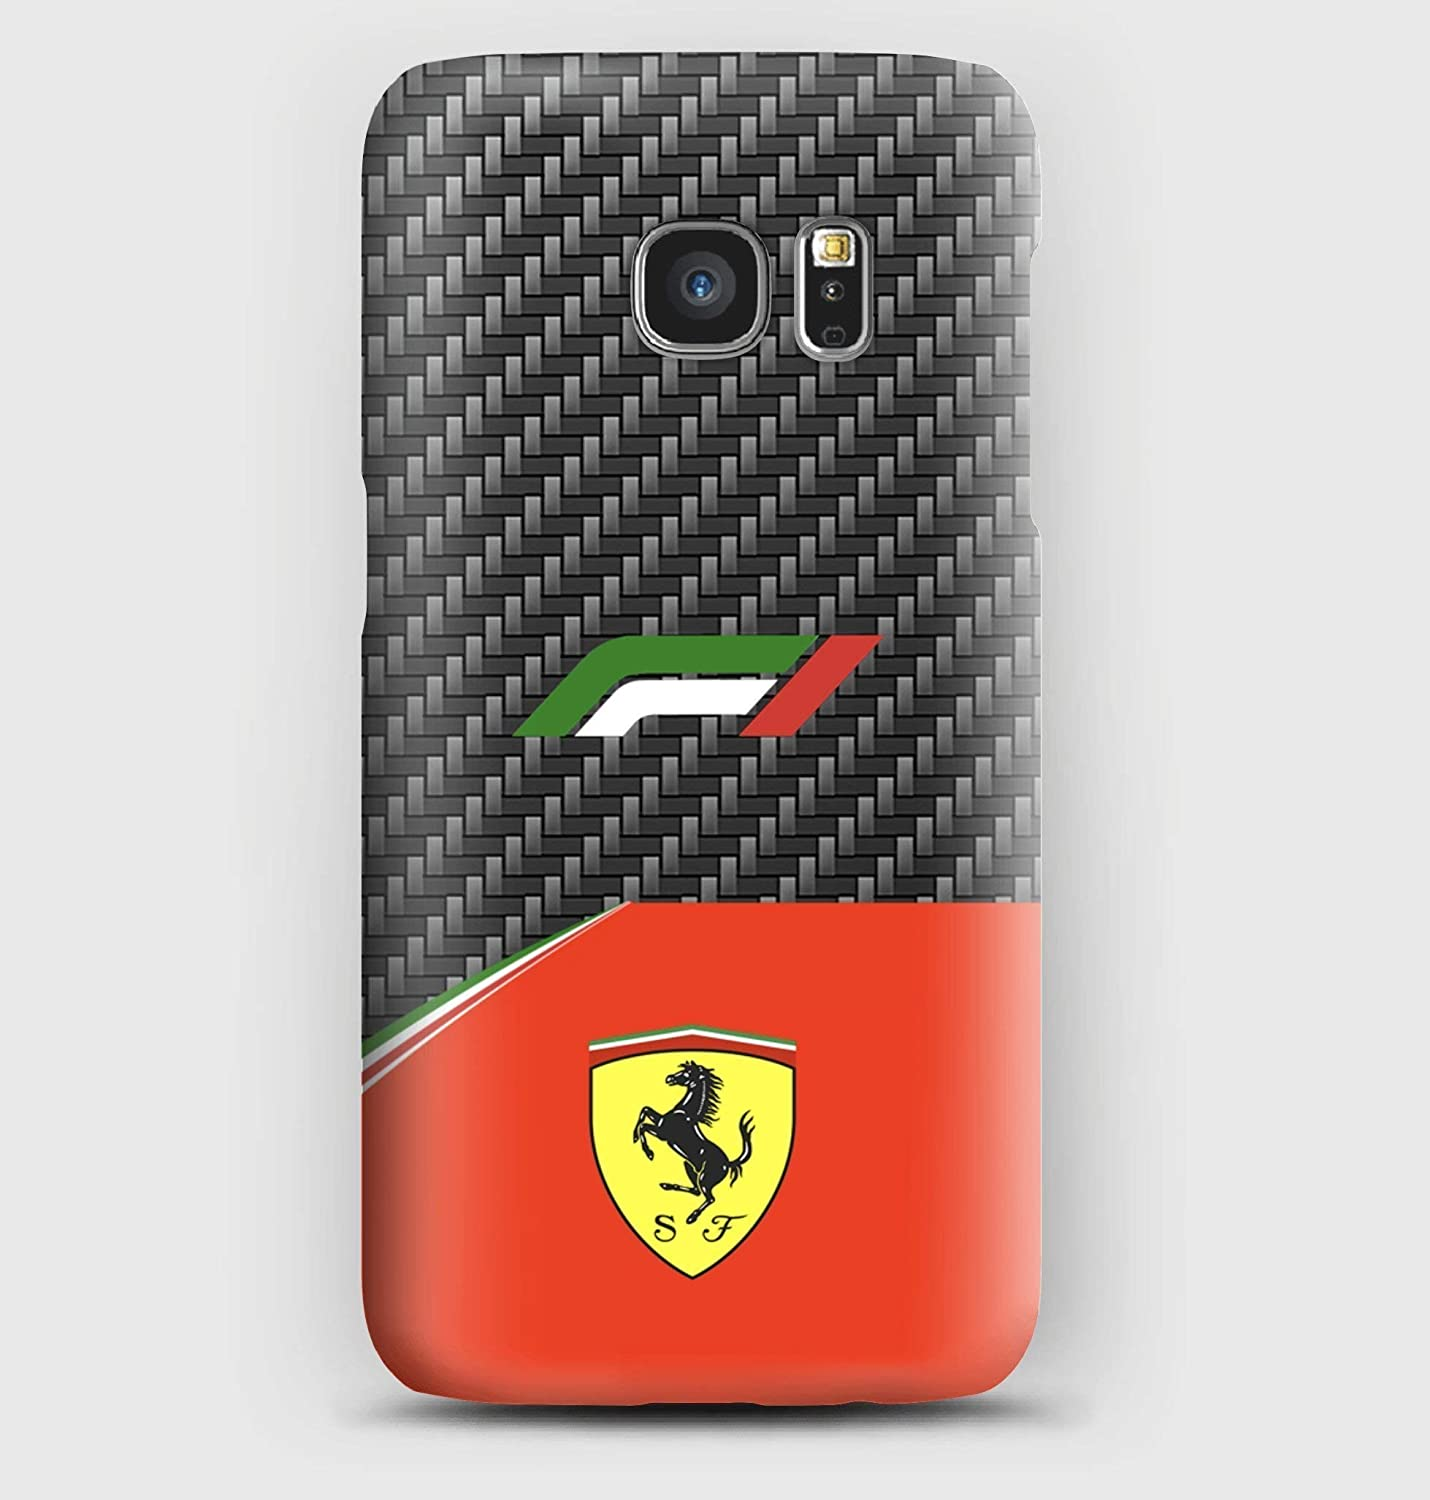 F1 carbon Ferrari Cover Samsung S6, S7, S8, S9, A3, A5, A8, J3, J5, Note, 5,8,9